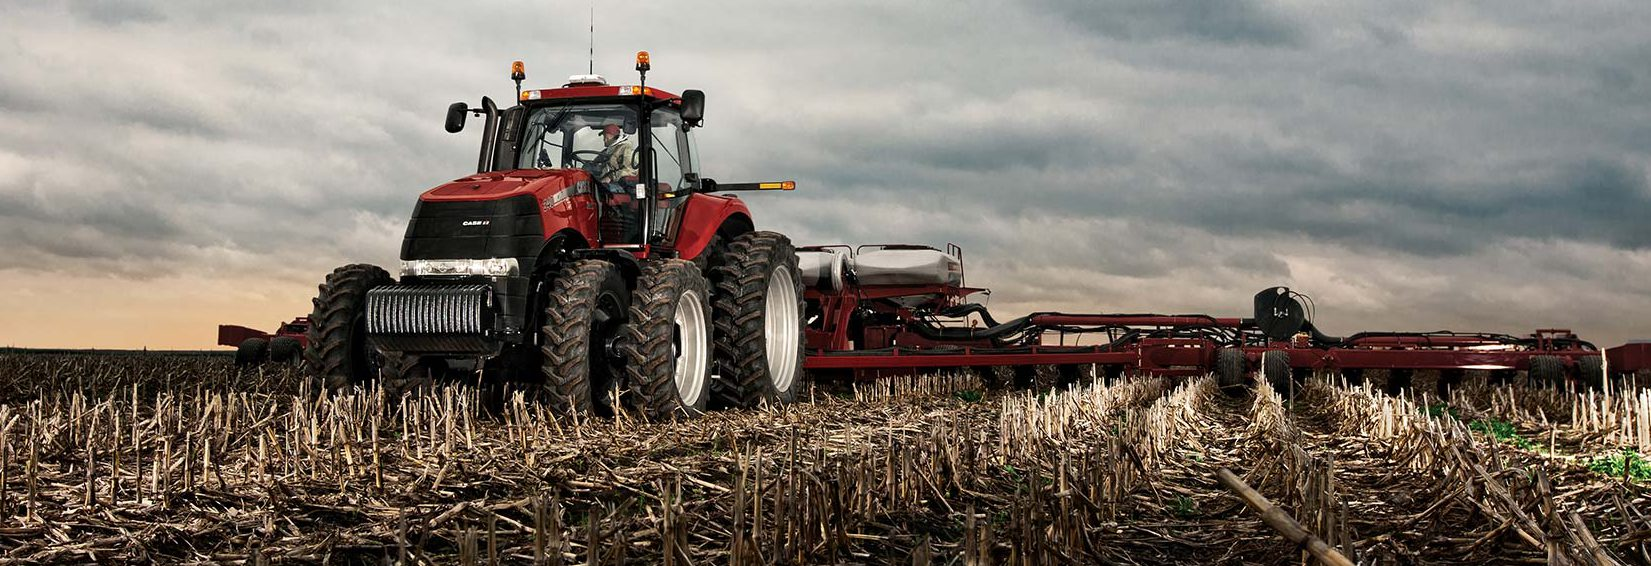 Case-Ih-Desktop-Backgrounds-e1519696825269